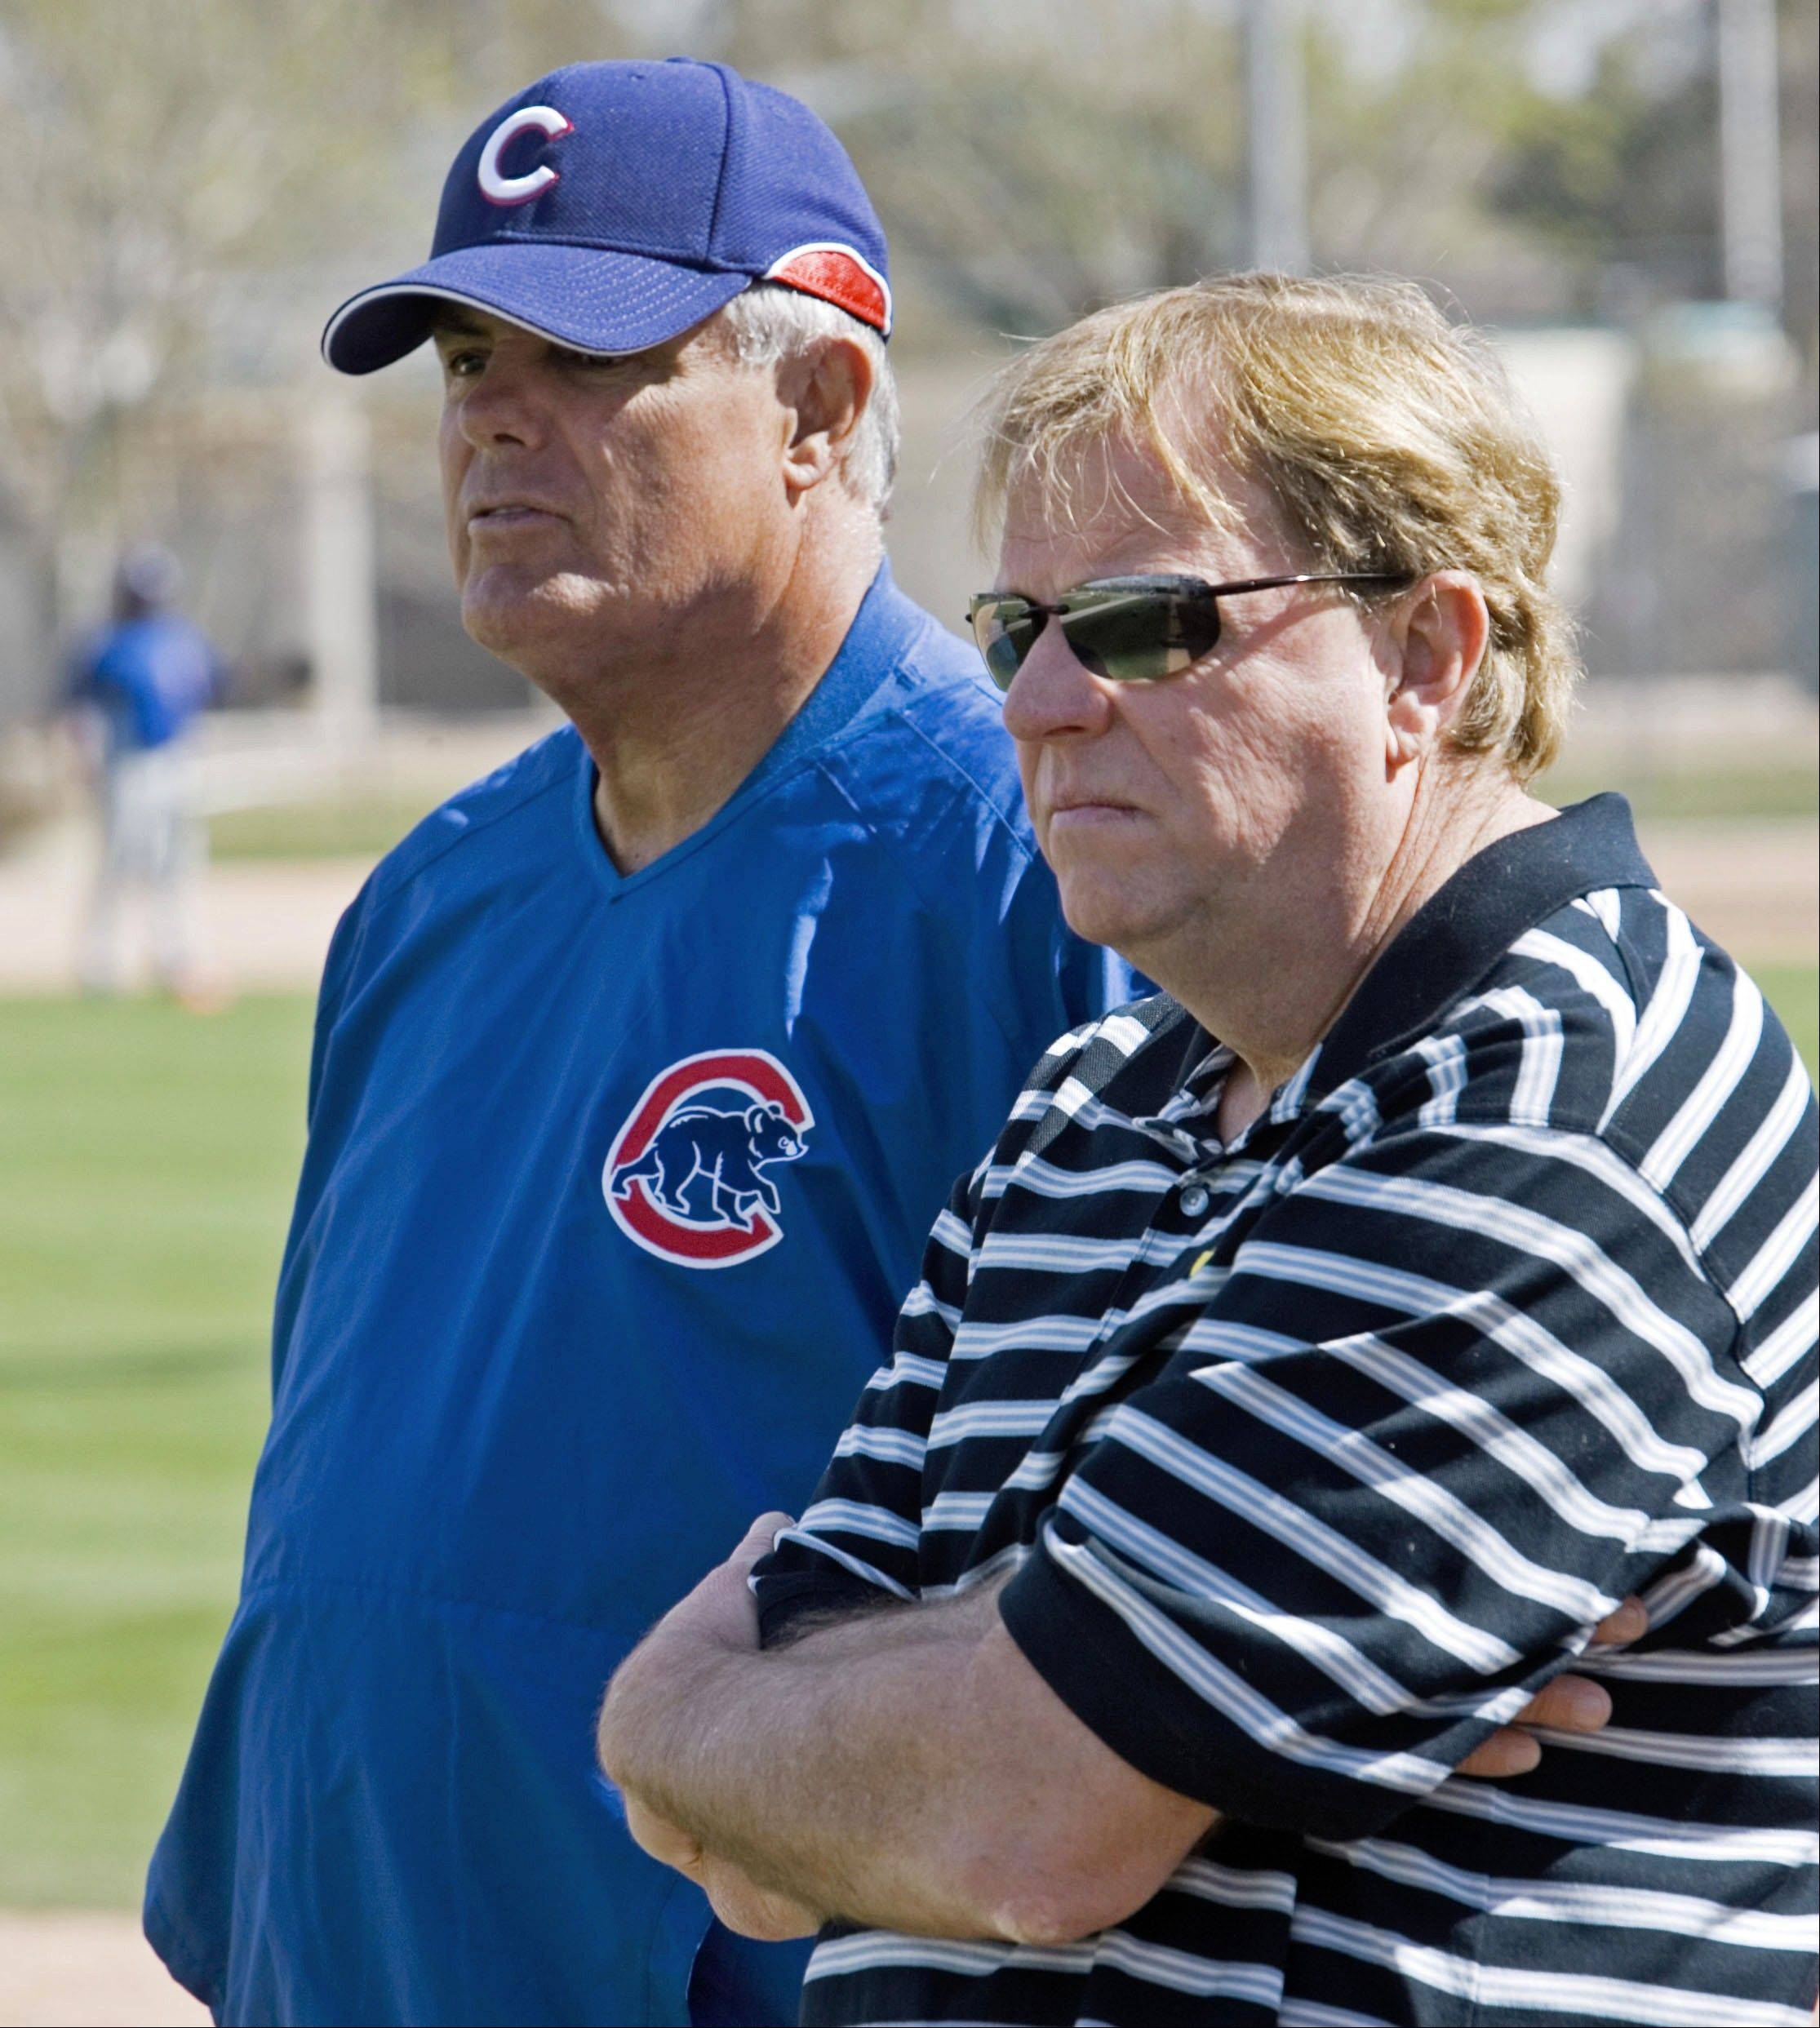 Chicago Cubs manager Lou Piniella, left, and general manager Jim Hendry watch batting practice during a spring training baseball workout at the team's practice facility in this Feb. 25, 2007 file photo, in Mesa, Ariz.